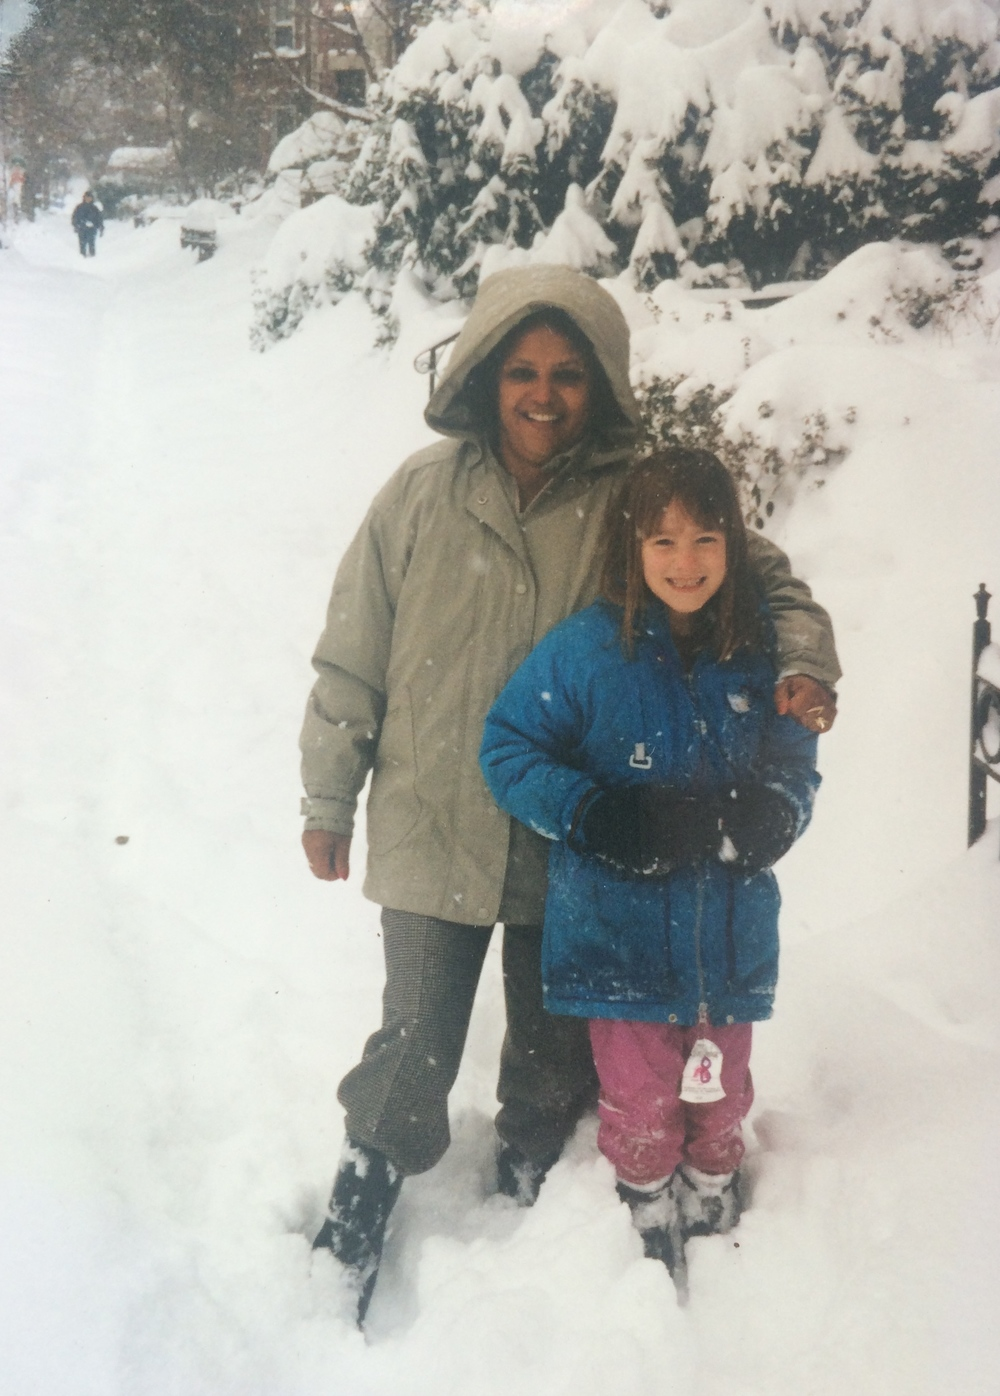 Lemmy and Eliza in the Blizzard of 1996